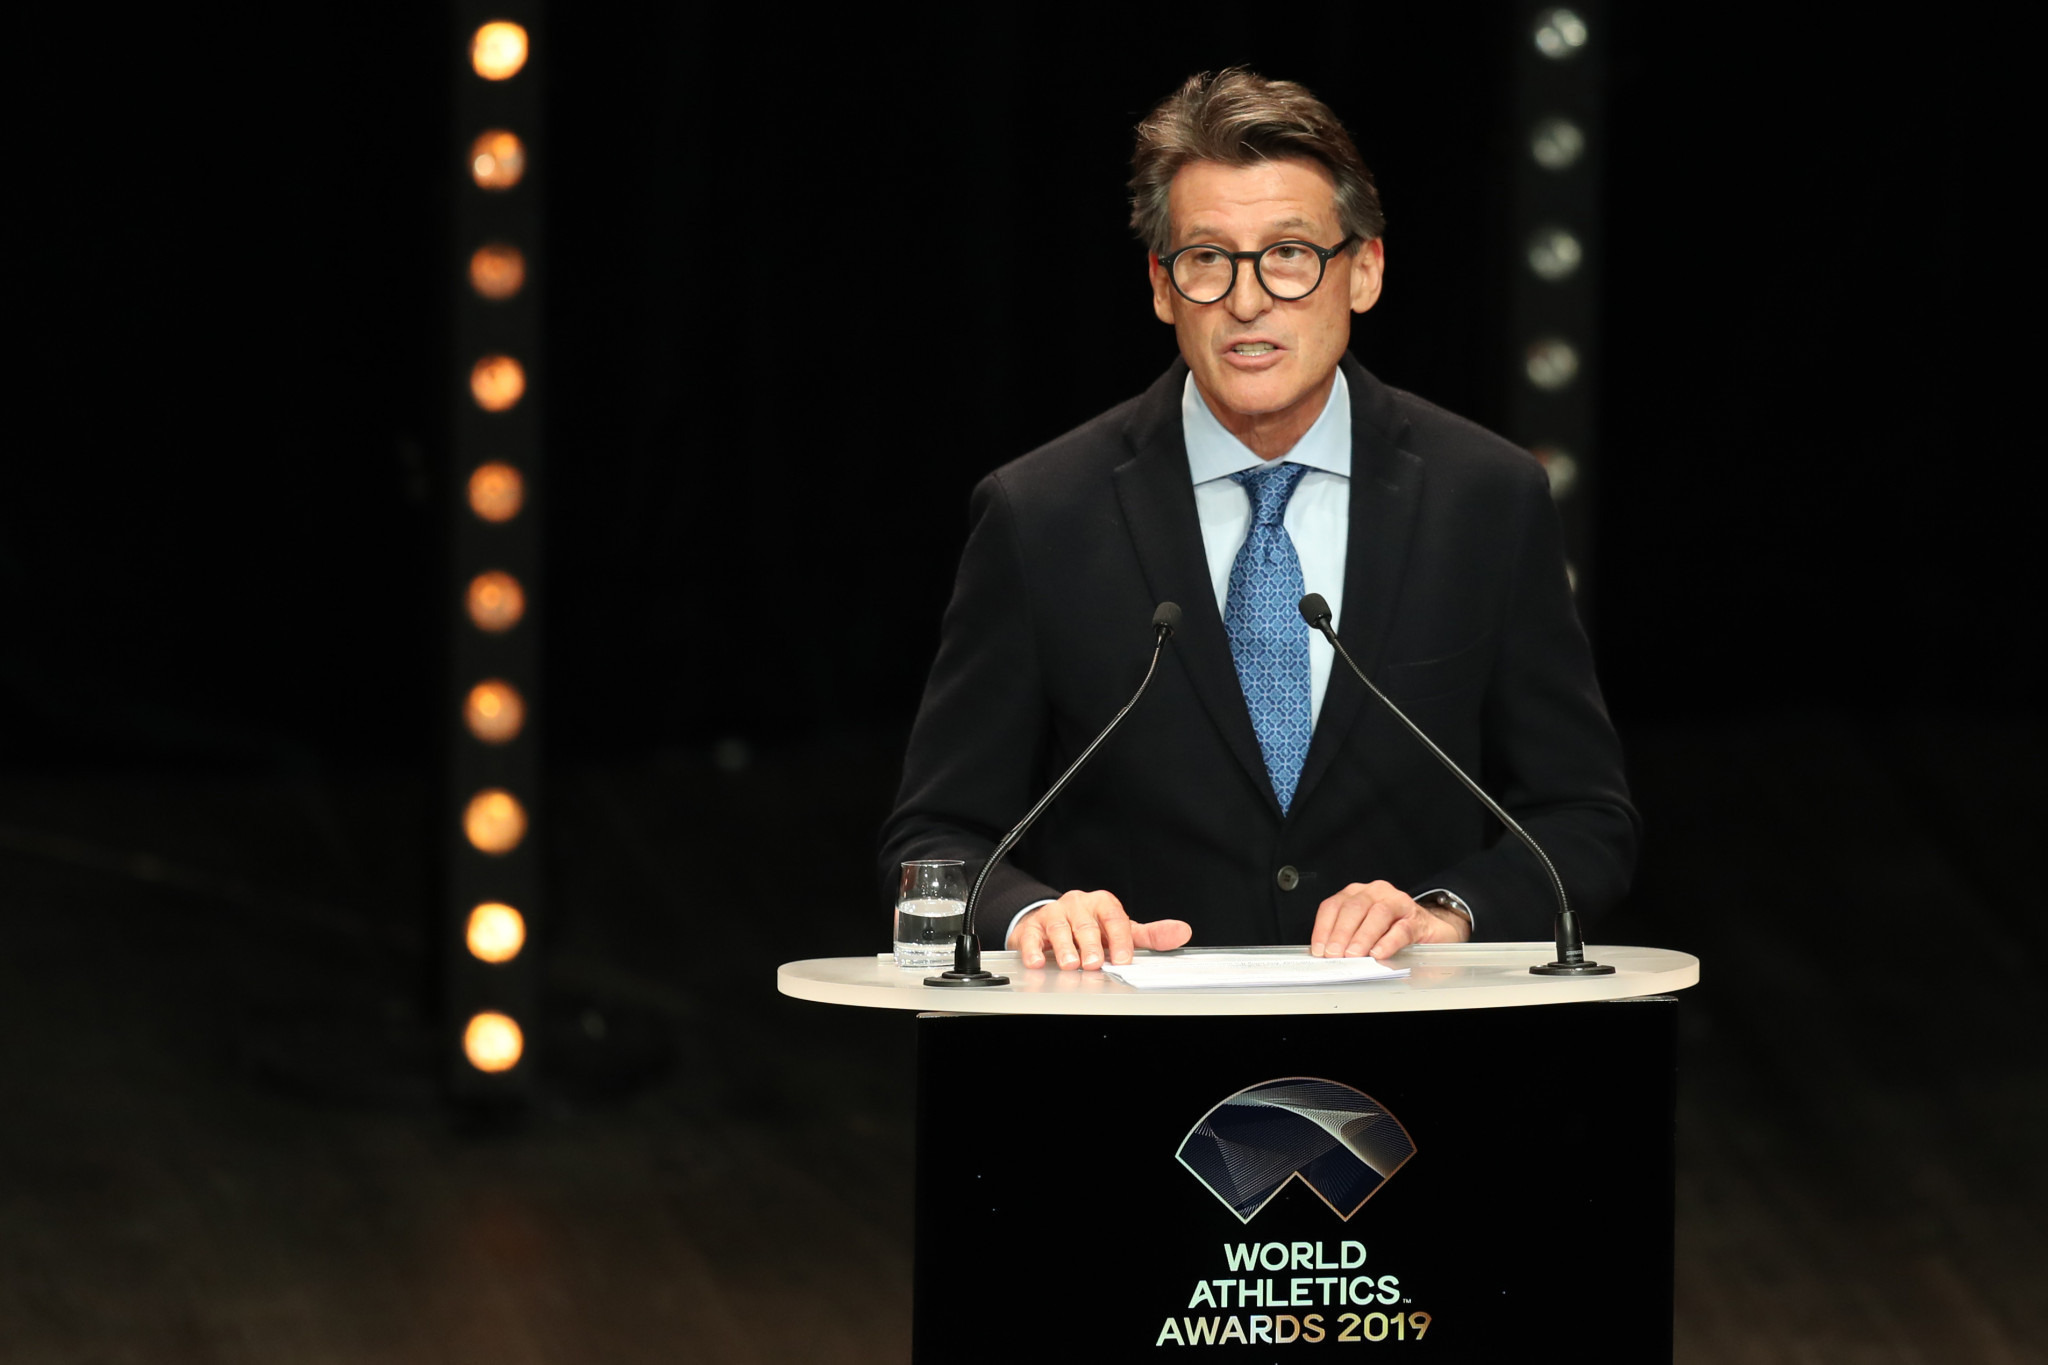 World Athletics President Sebastian Coe has been asked to allow Olympic qualification - frozen until December 1 - to take place at selected meetings if they are able to happen later this year ©Getty Images